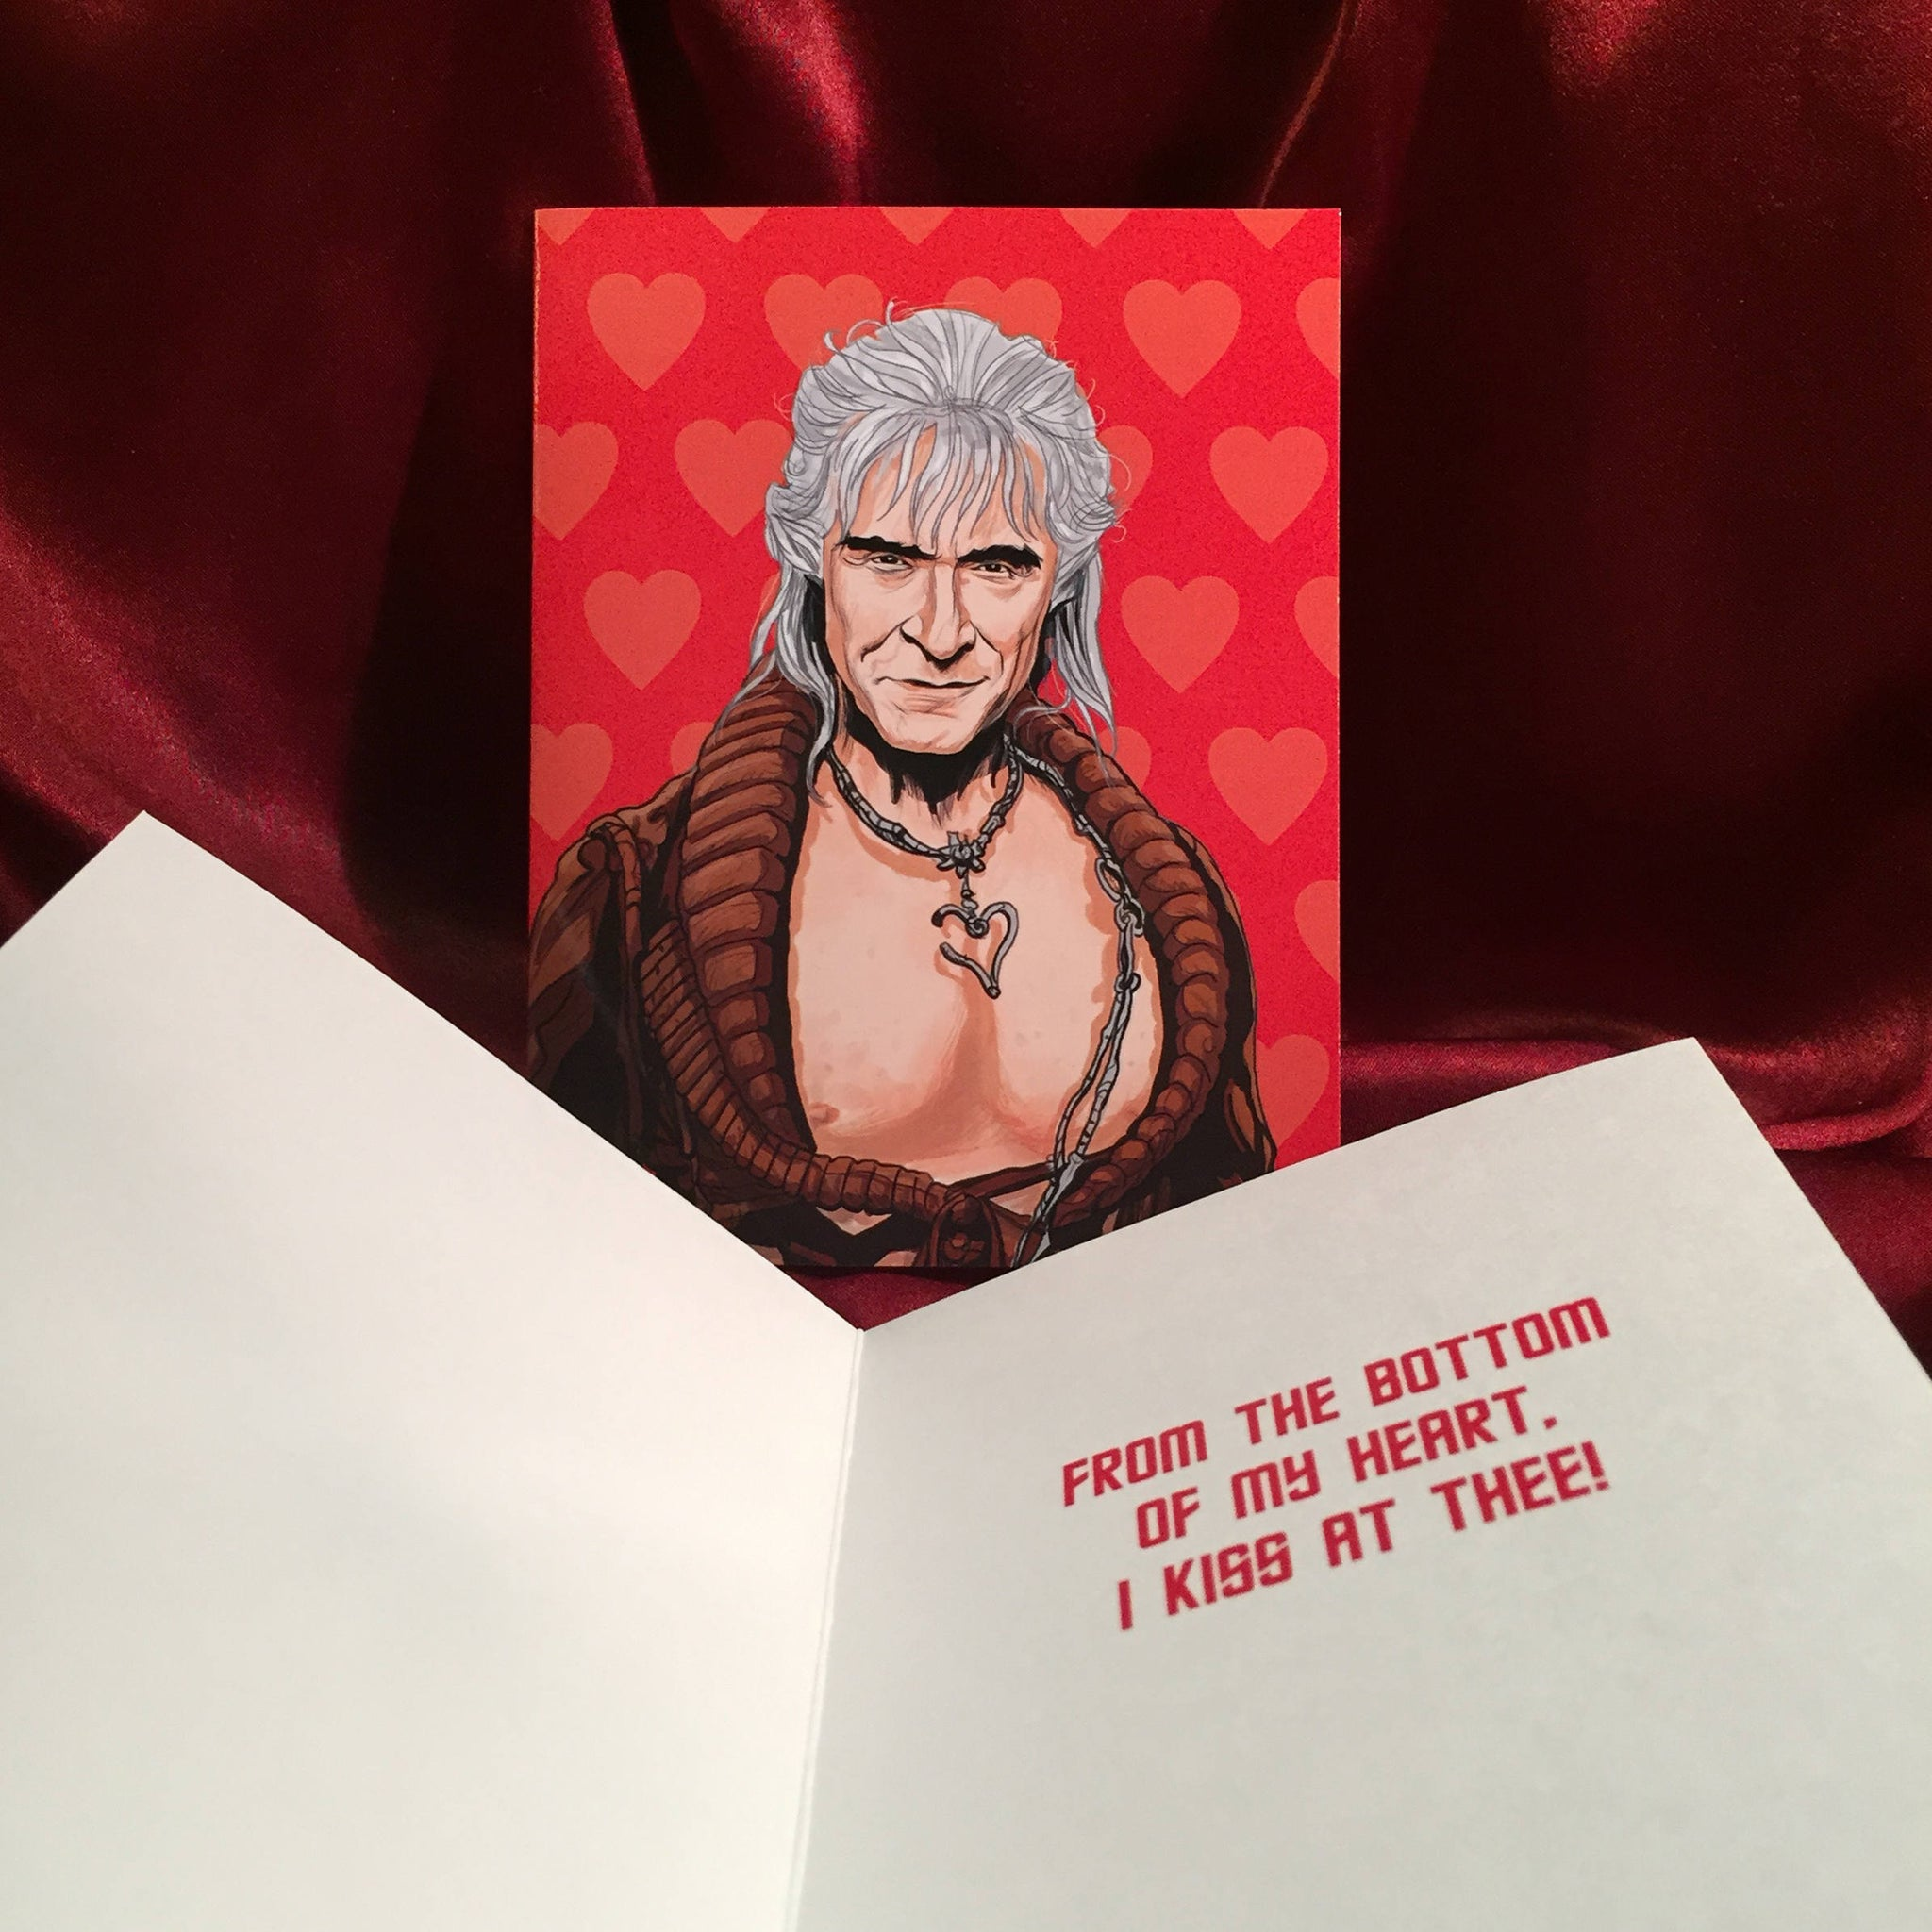 STAR TREK Khan Valentine's Day CARD!